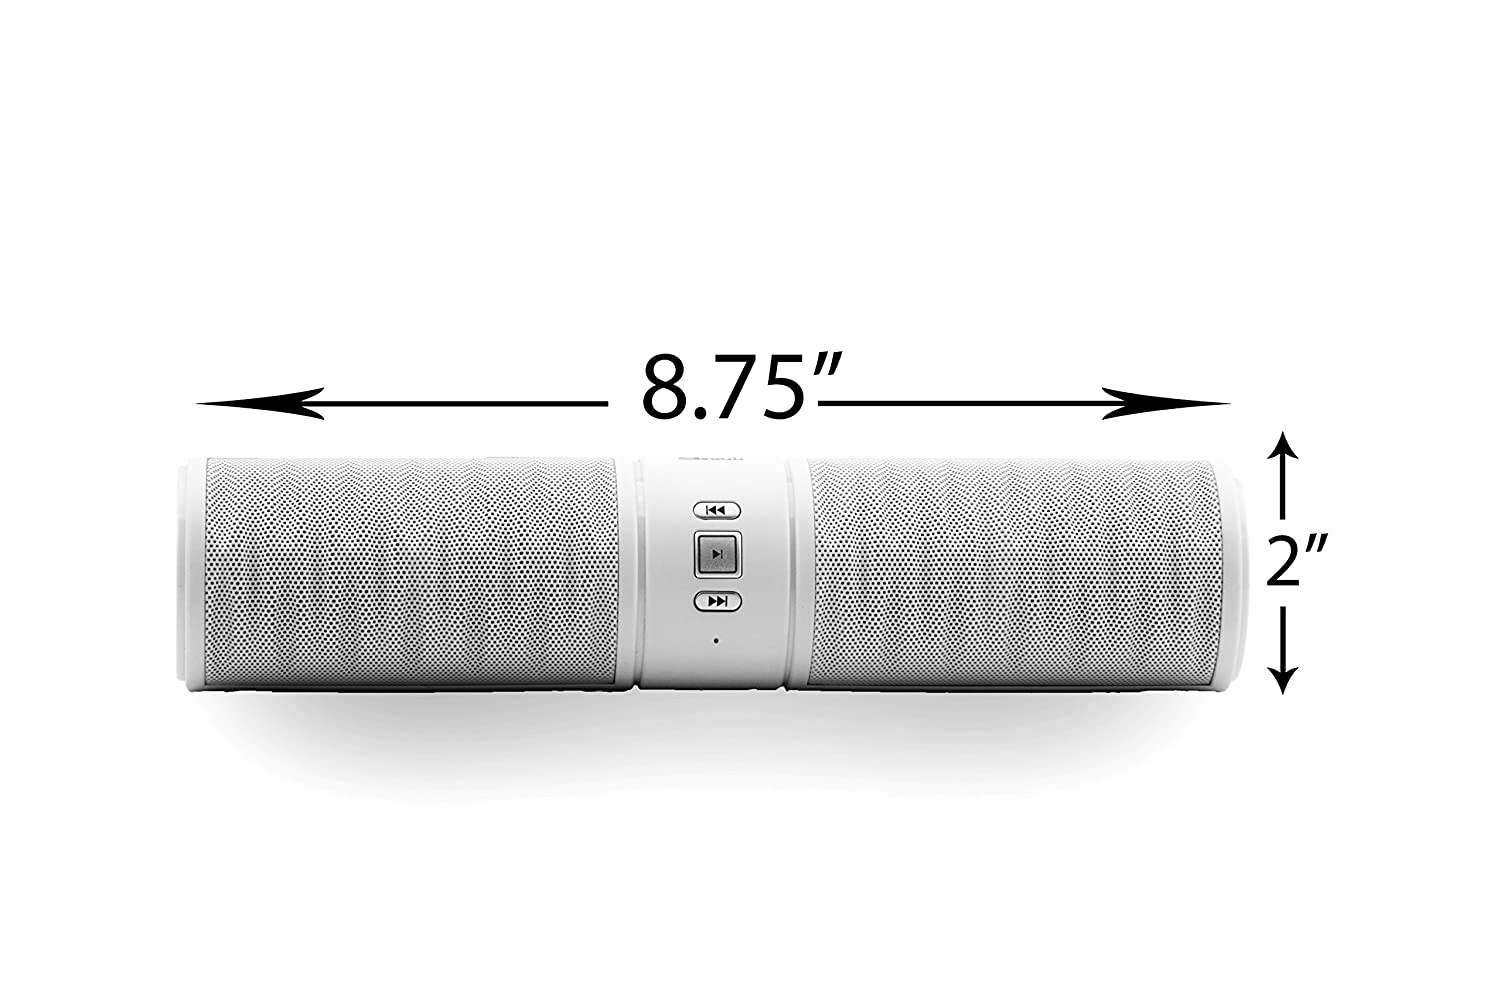 Wireless Bluetooth Speaker, Roll (White) Ultra-portable , Powerful Sound with Build in Microphone, Works for Iphone 4, 4s, 5, 5s, 6, 6 Plus, Ipad Mini, Ipad 4/3/2, Itouch, Blackberry, Nexus, Samsung, Htc, Lg and Other Smart Phones, Tablets and Mp3 Player кристал стилус сенсорный экран ручку для iphone 6 6 5 плюс ipad воздух мини 2 3 4 samsung htc